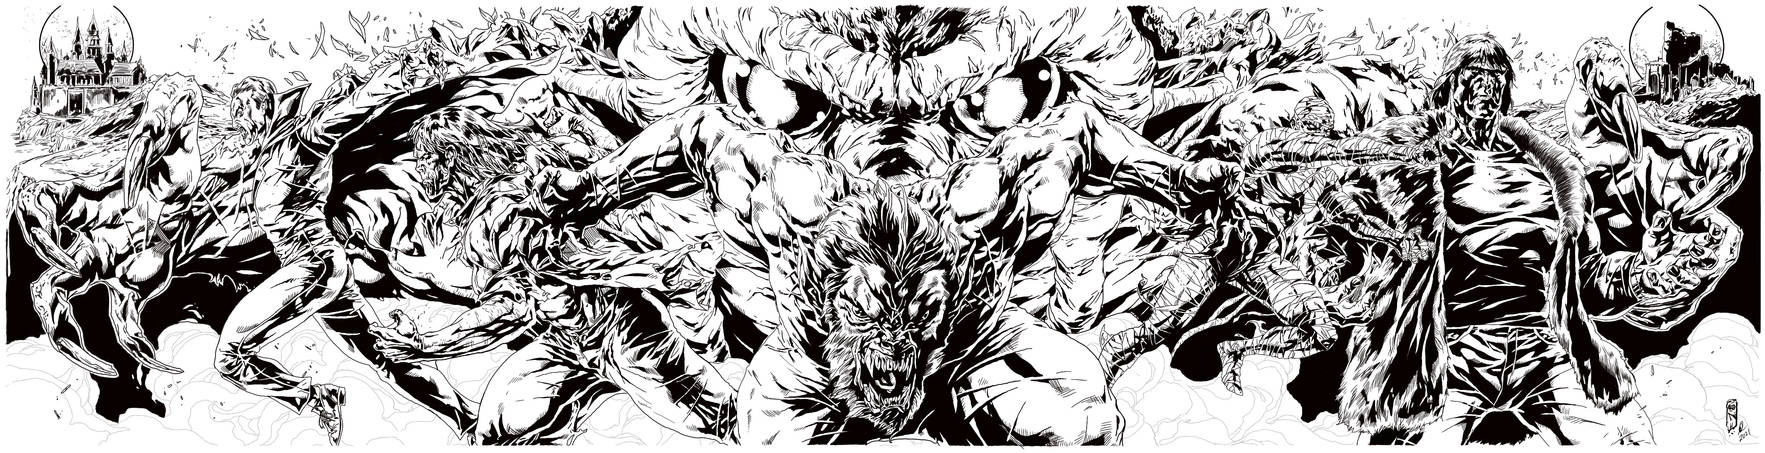 Classic Monsters by Caanan White Inked by GDC